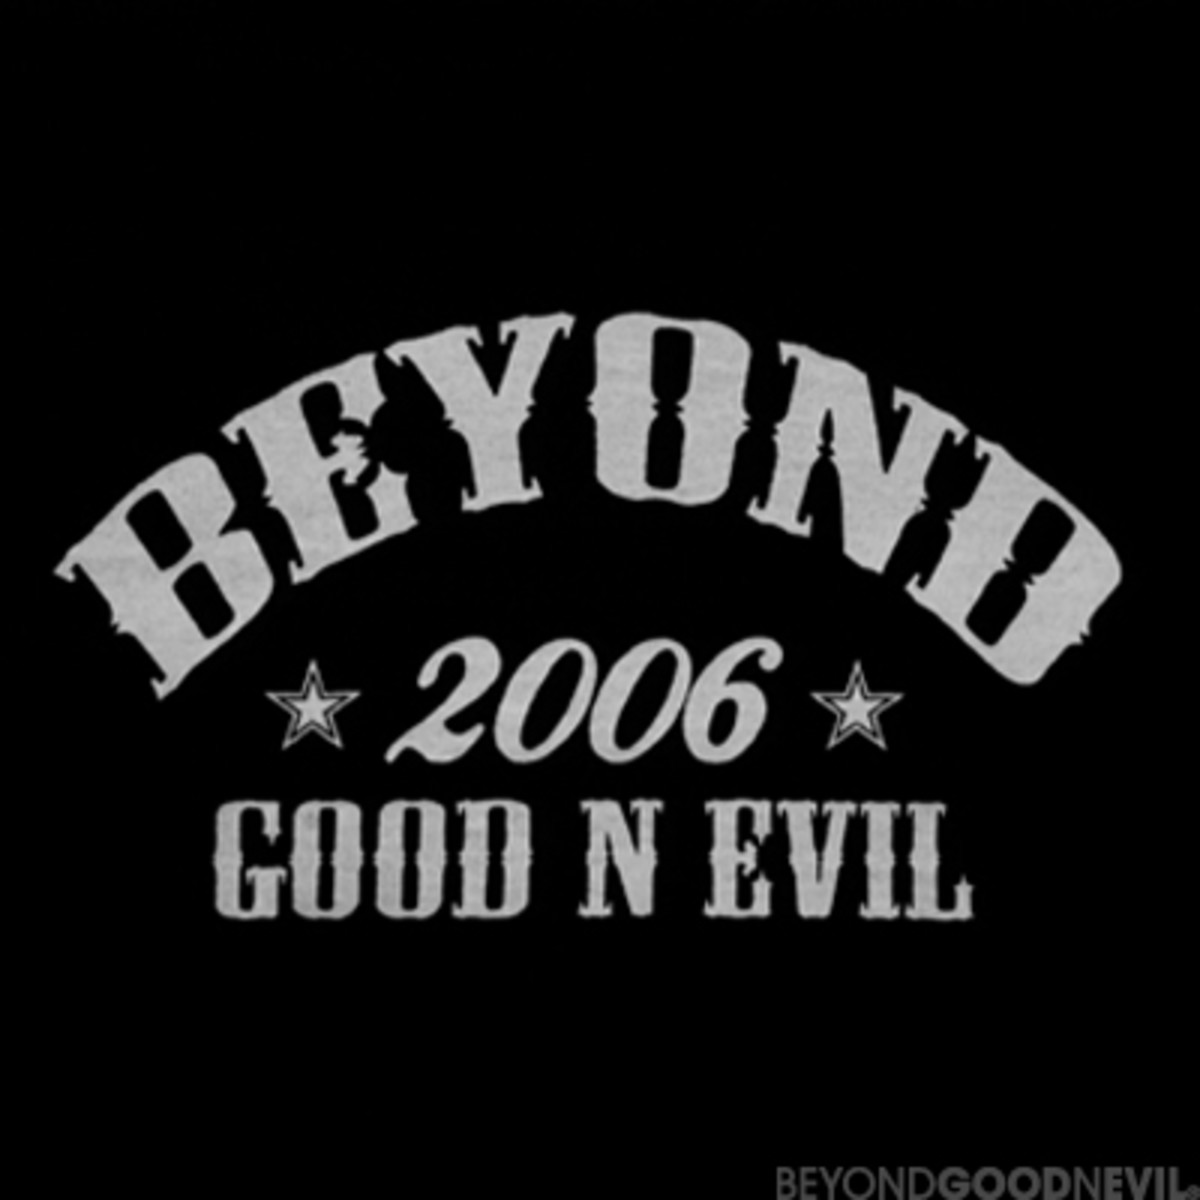 Beyond Good N Evil - New Collection - 1